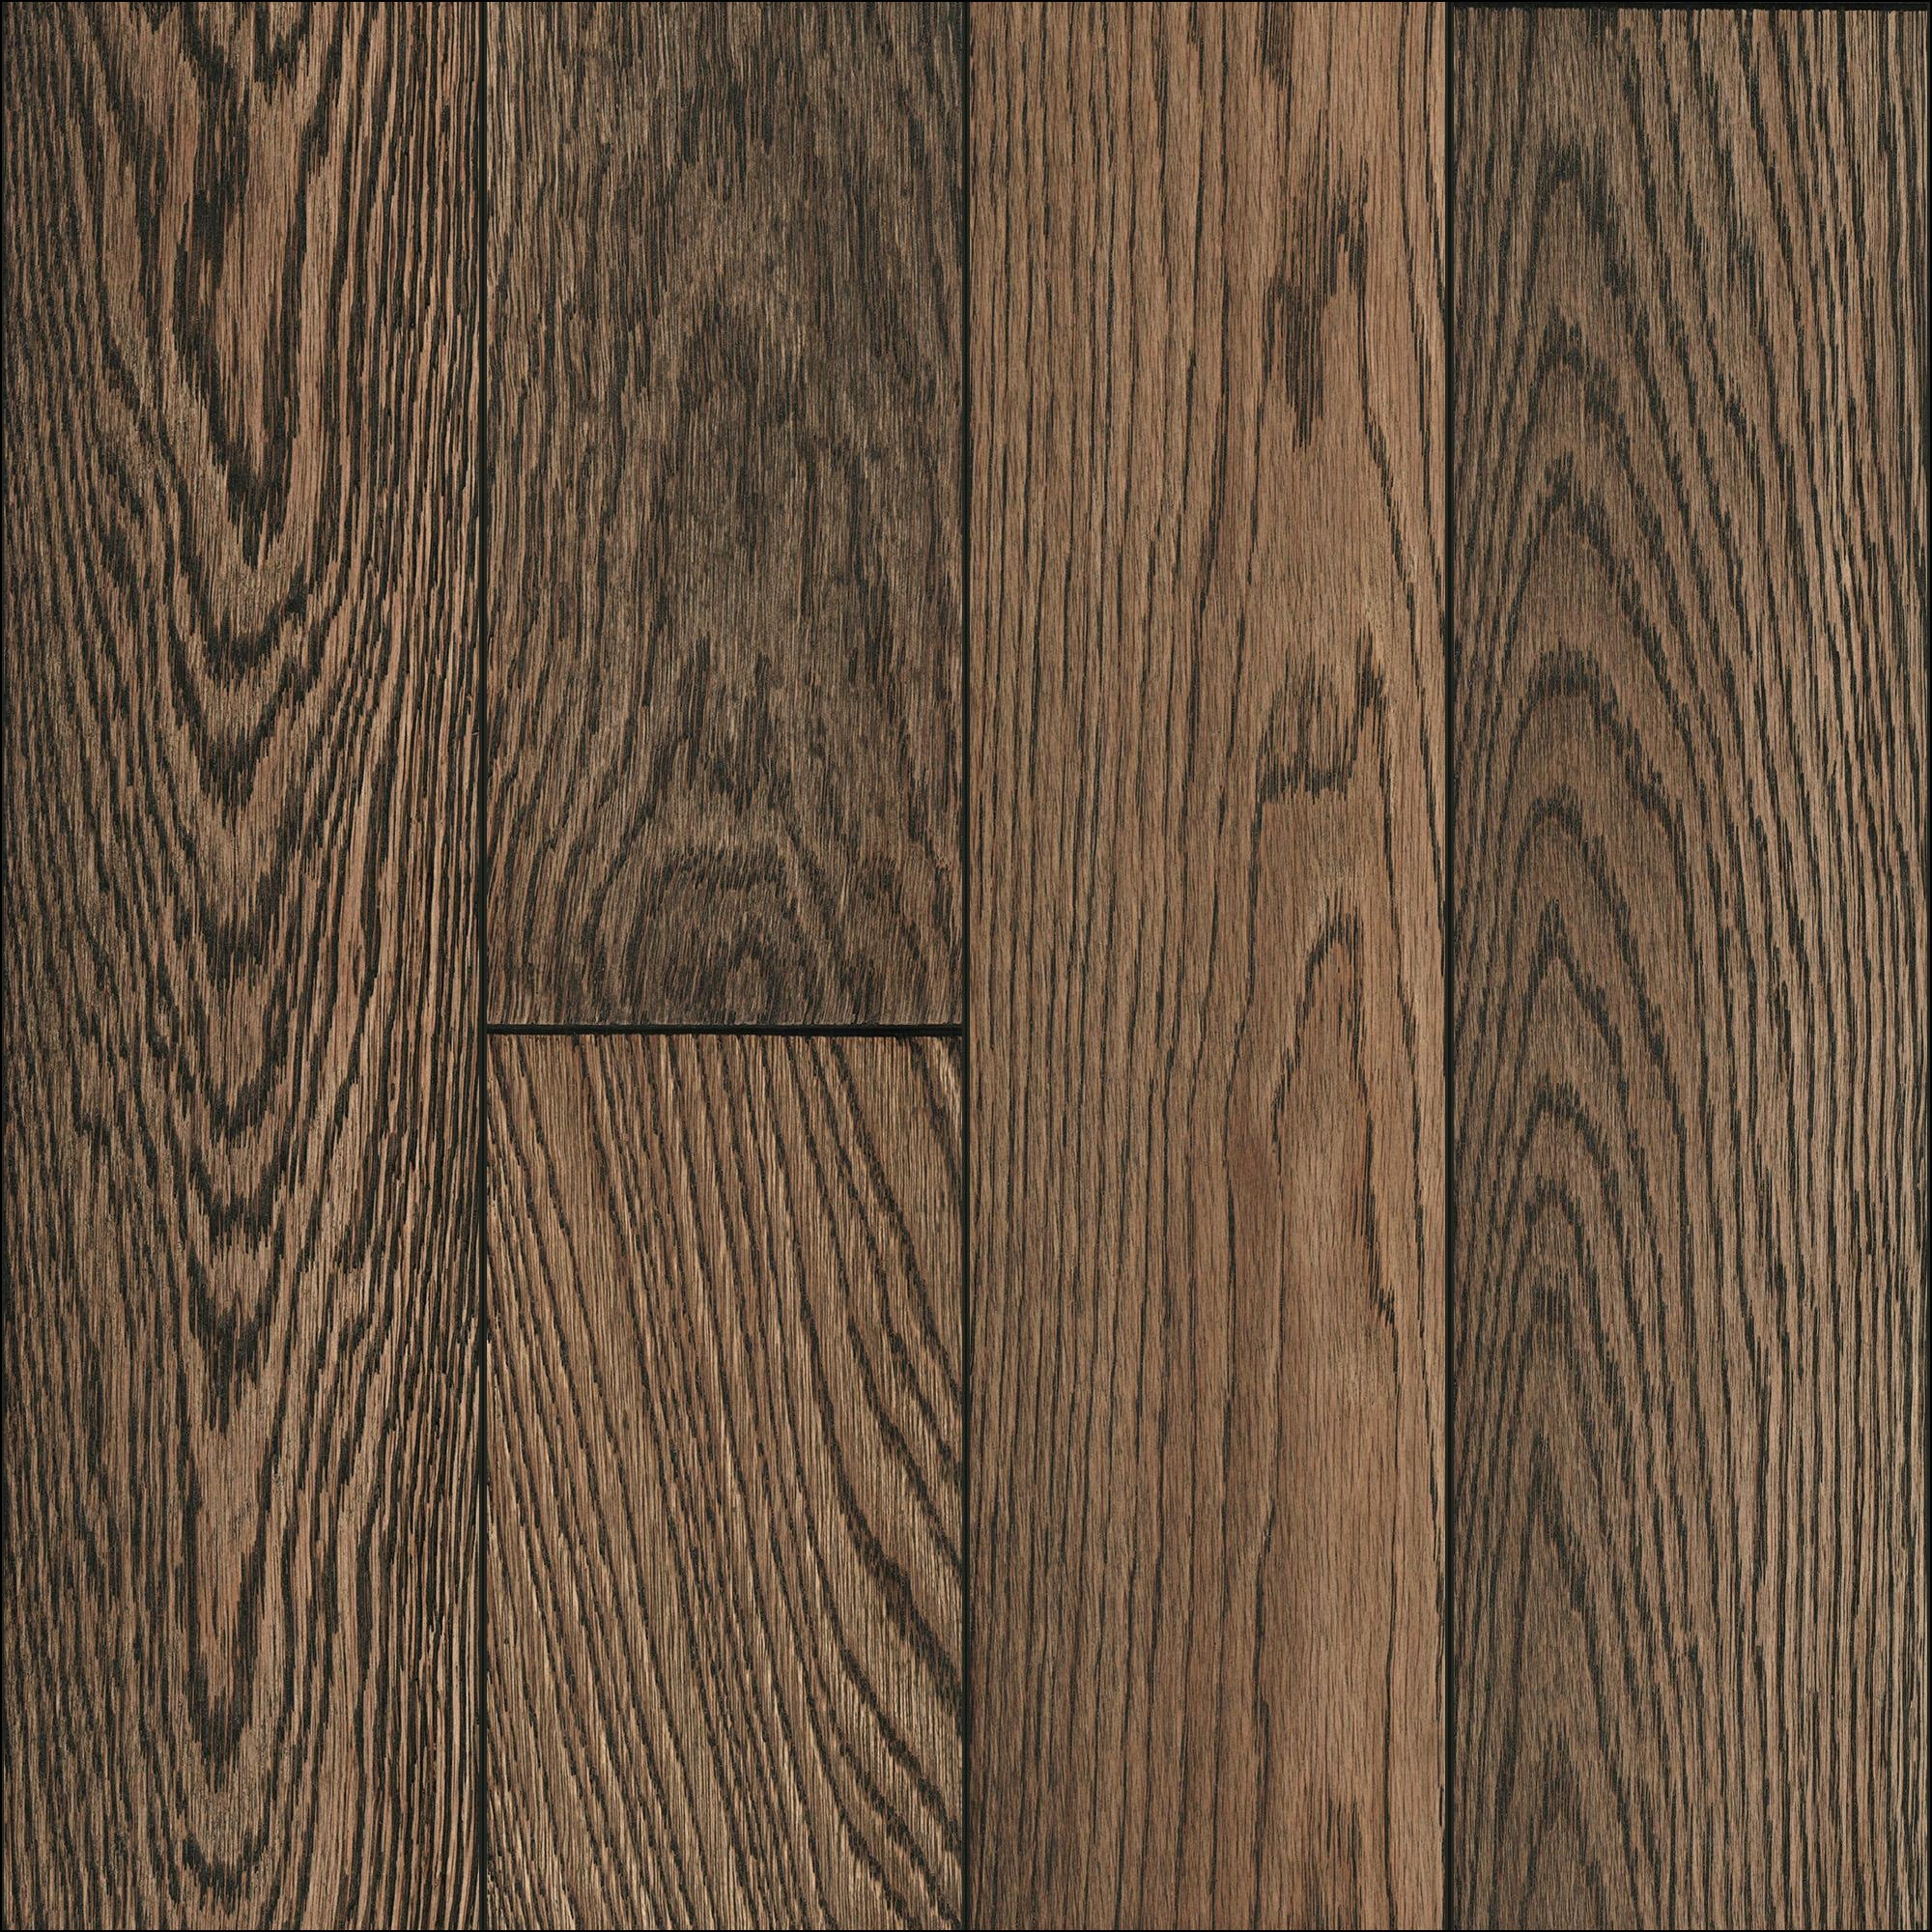 dark prefinished hardwood flooring of wide plank flooring ideas regarding wide plank dark wood flooring galerie timber hardwood wheat 5 wide solid hardwood flooring of